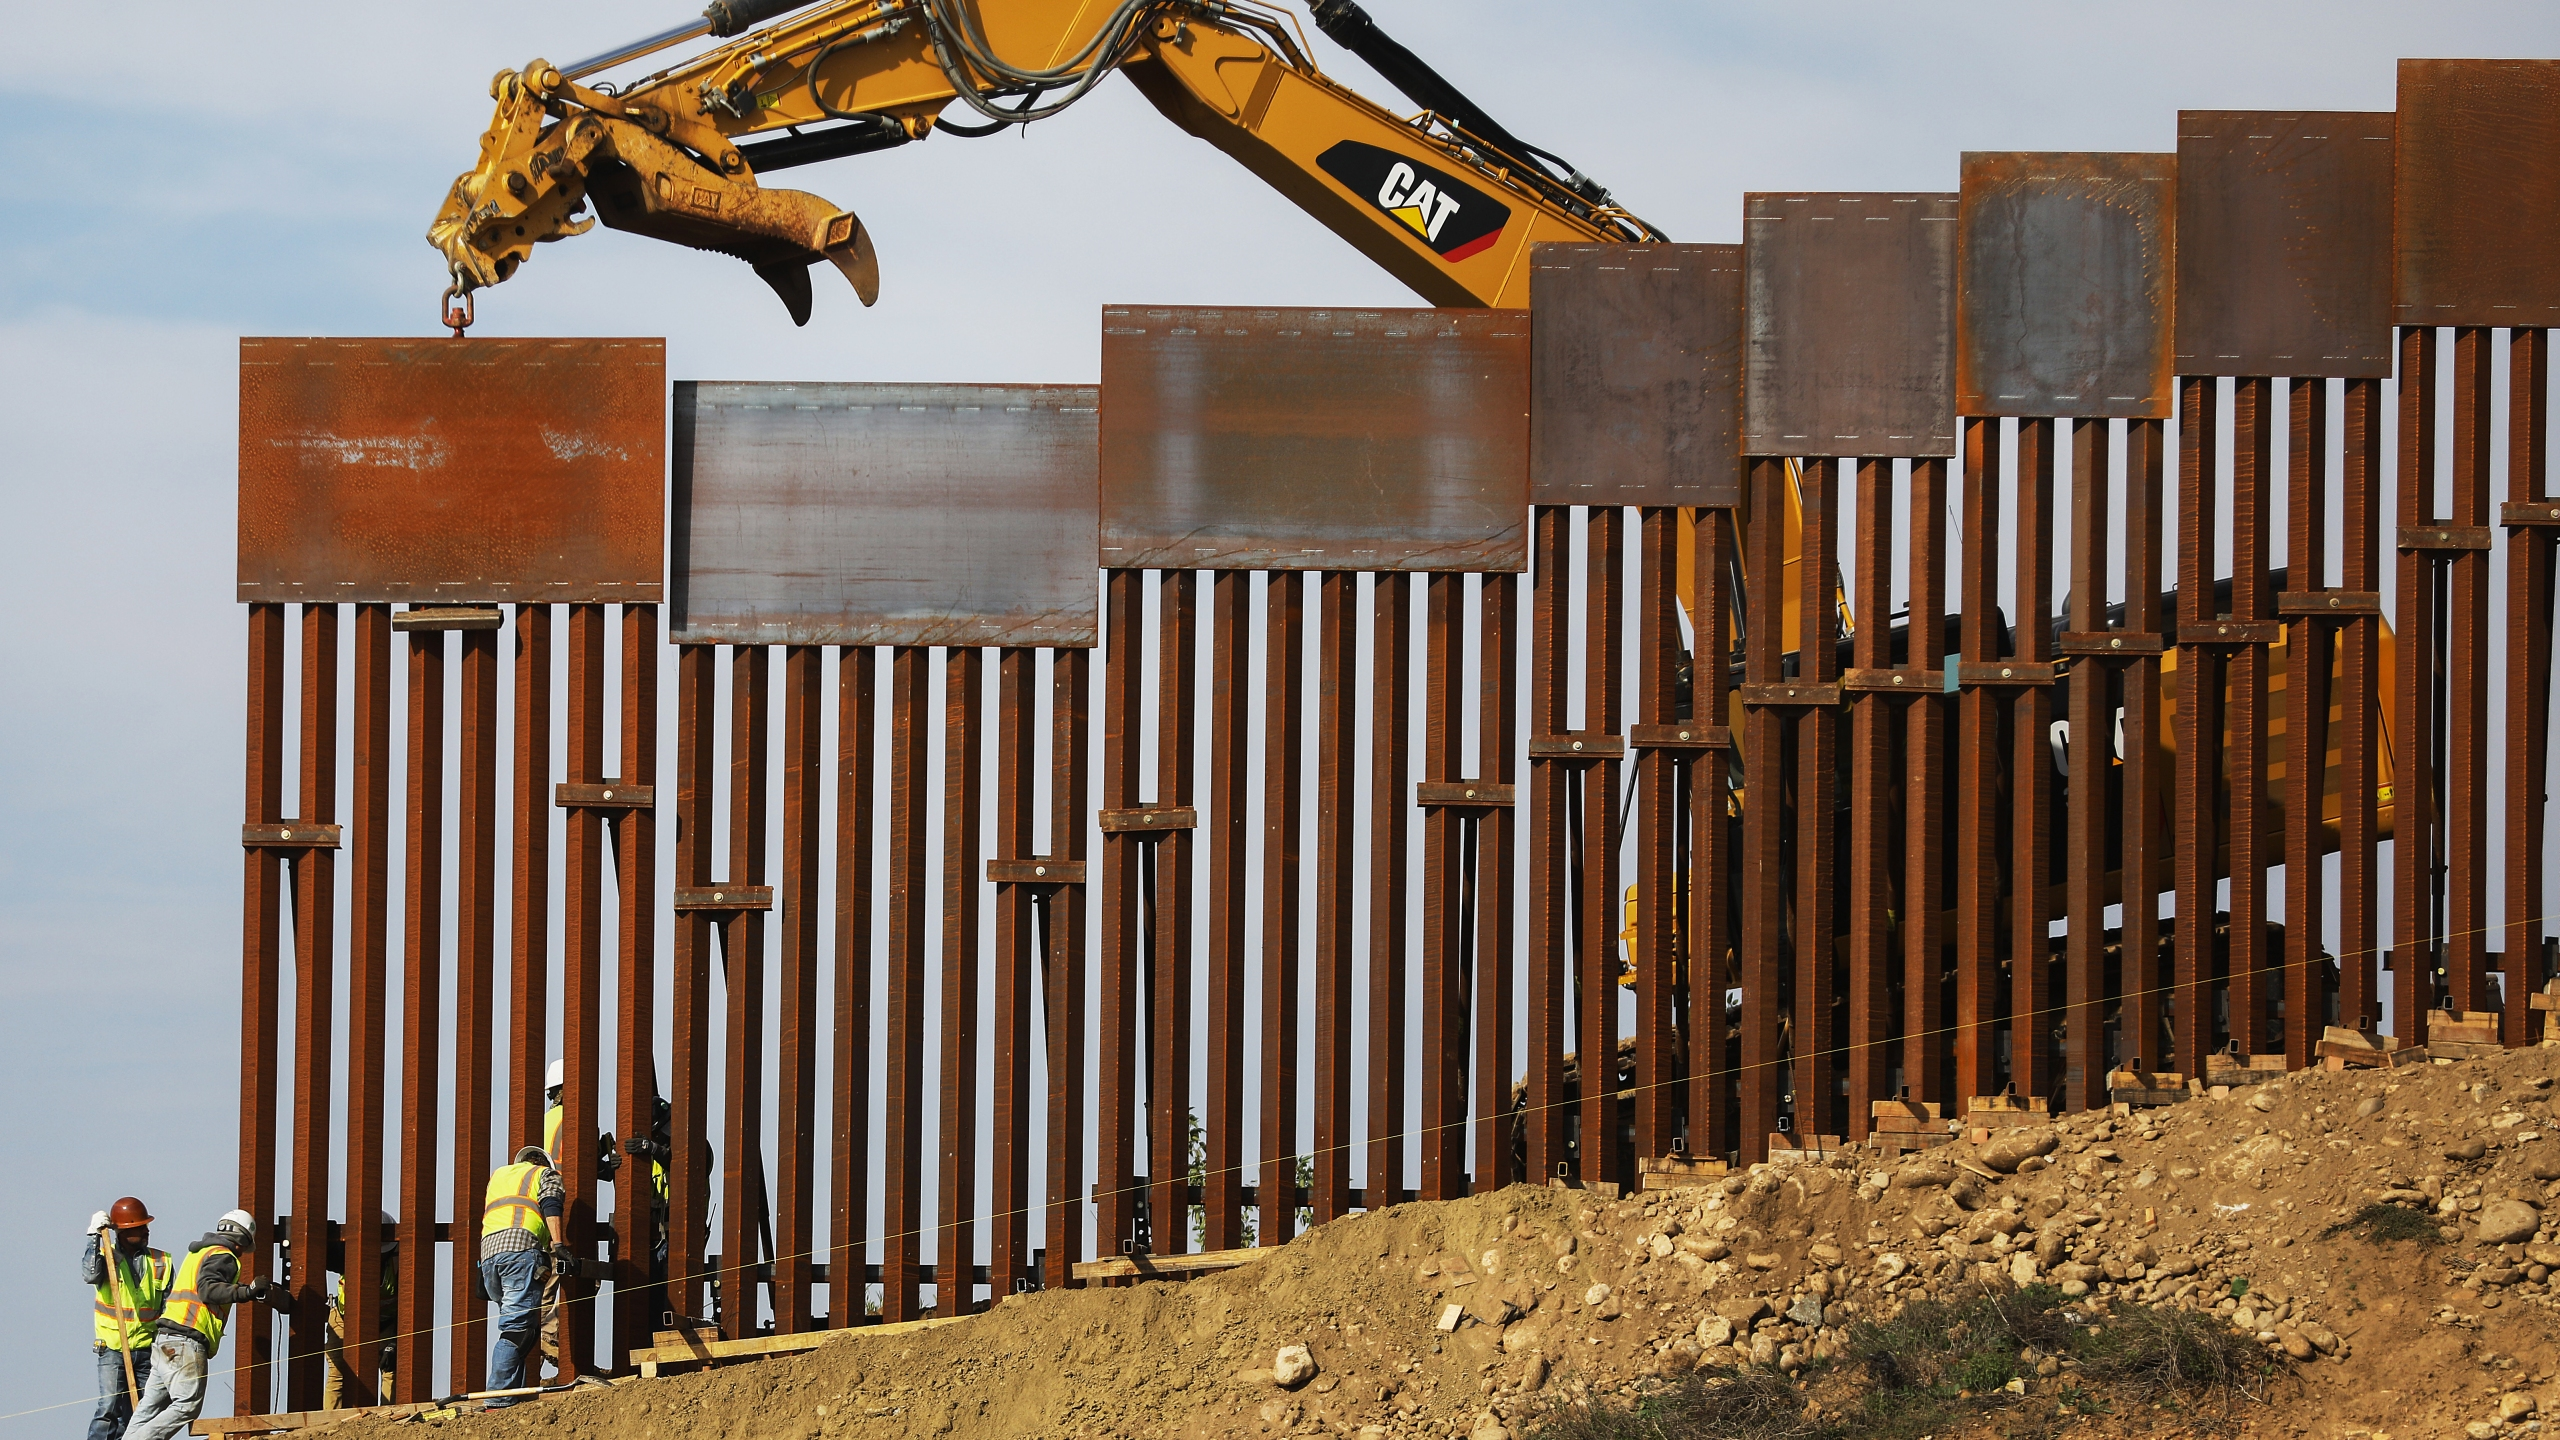 A construction crew installs new sections of the U.S.-Mexico border barrier replacing smaller fences on January 11, 2019 as seen from Tijuana, Mexico.. (Credit: Mario Tama/Getty Images)